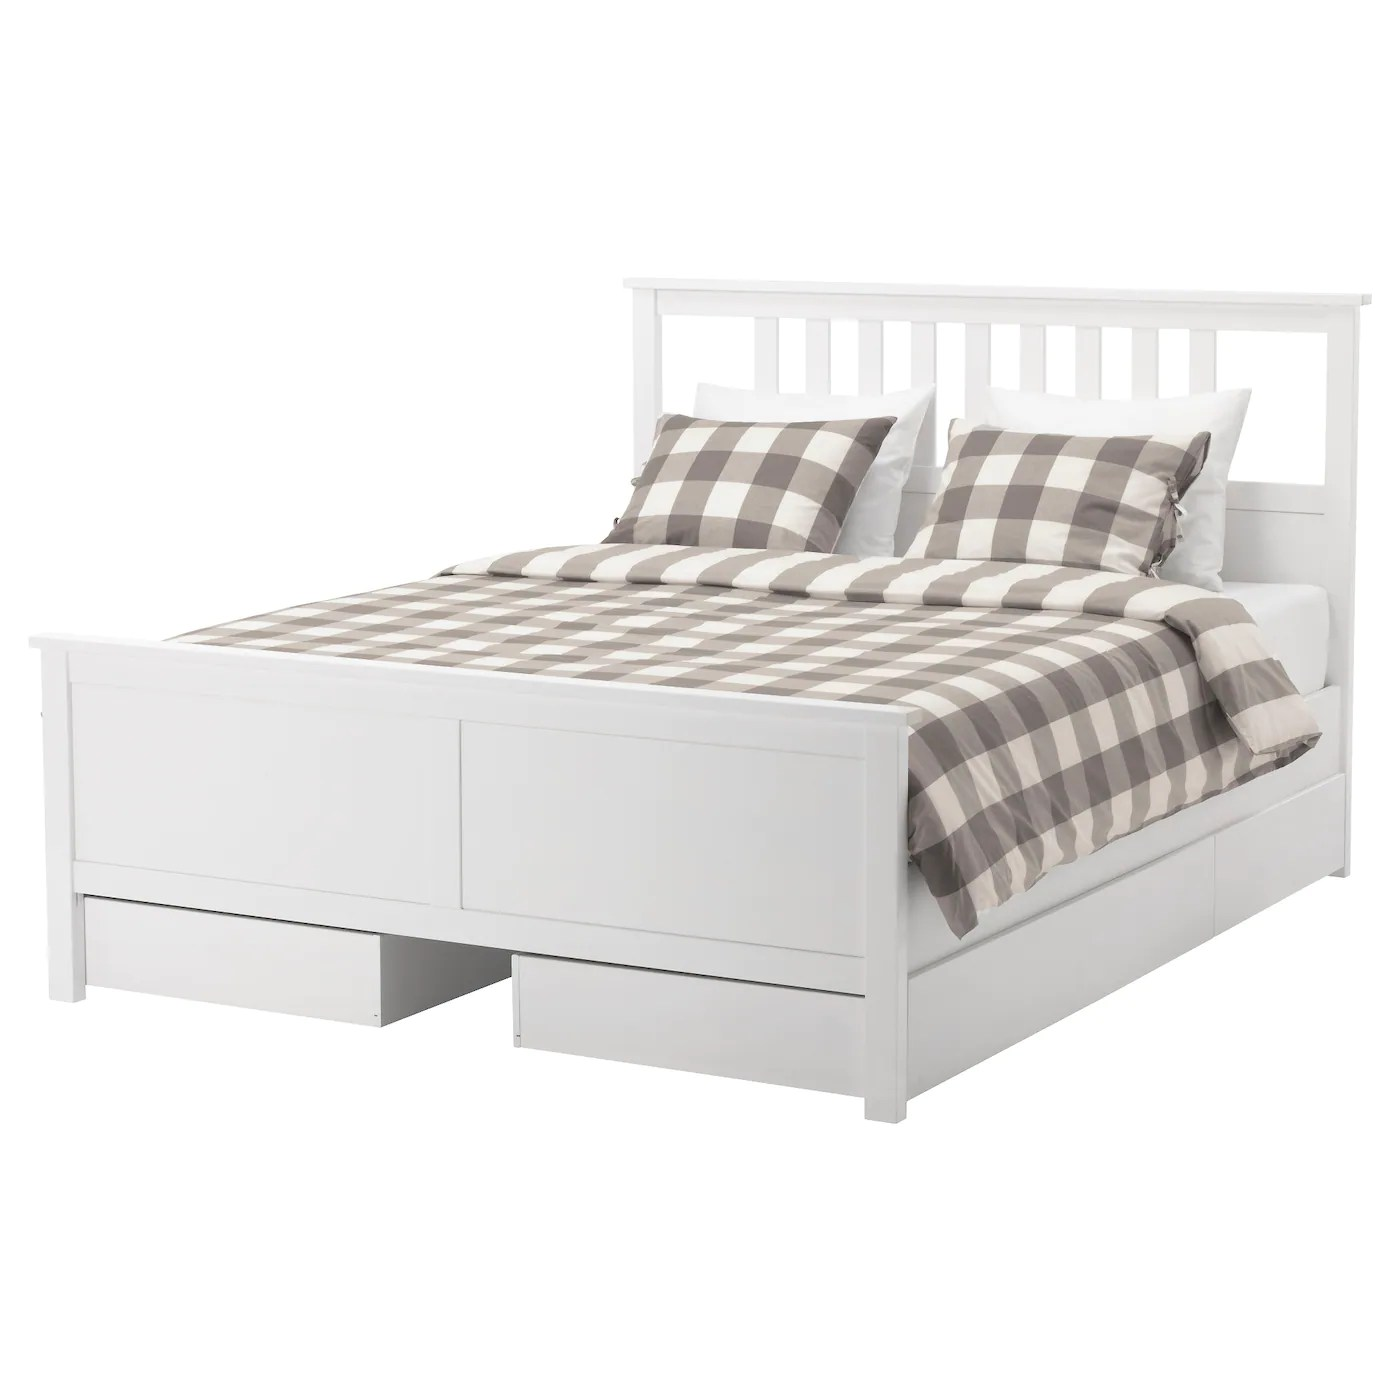 Double Beds Ikea Beds And Bed Frames Ikea